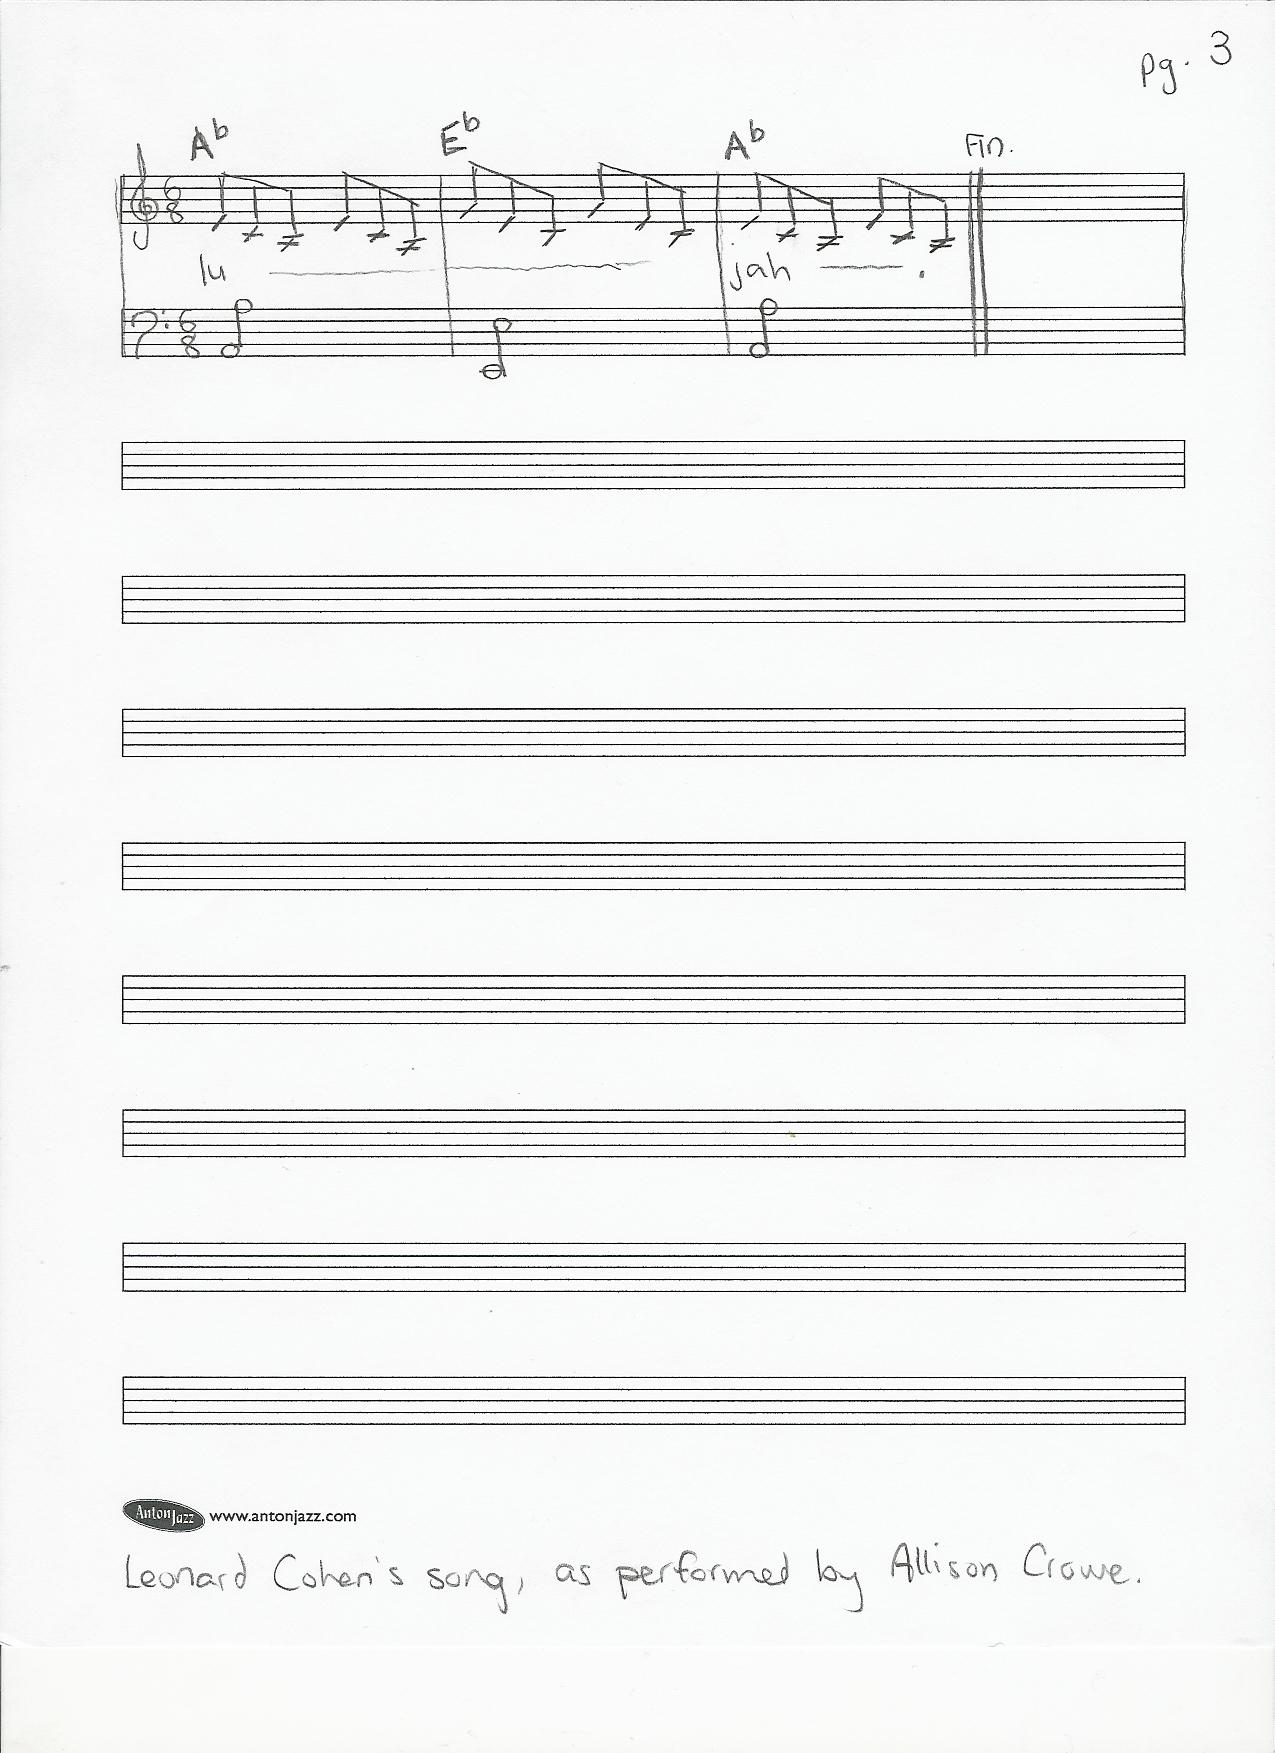 Hallelujah by leonard cohen performed by allison crowe sheet music page 3